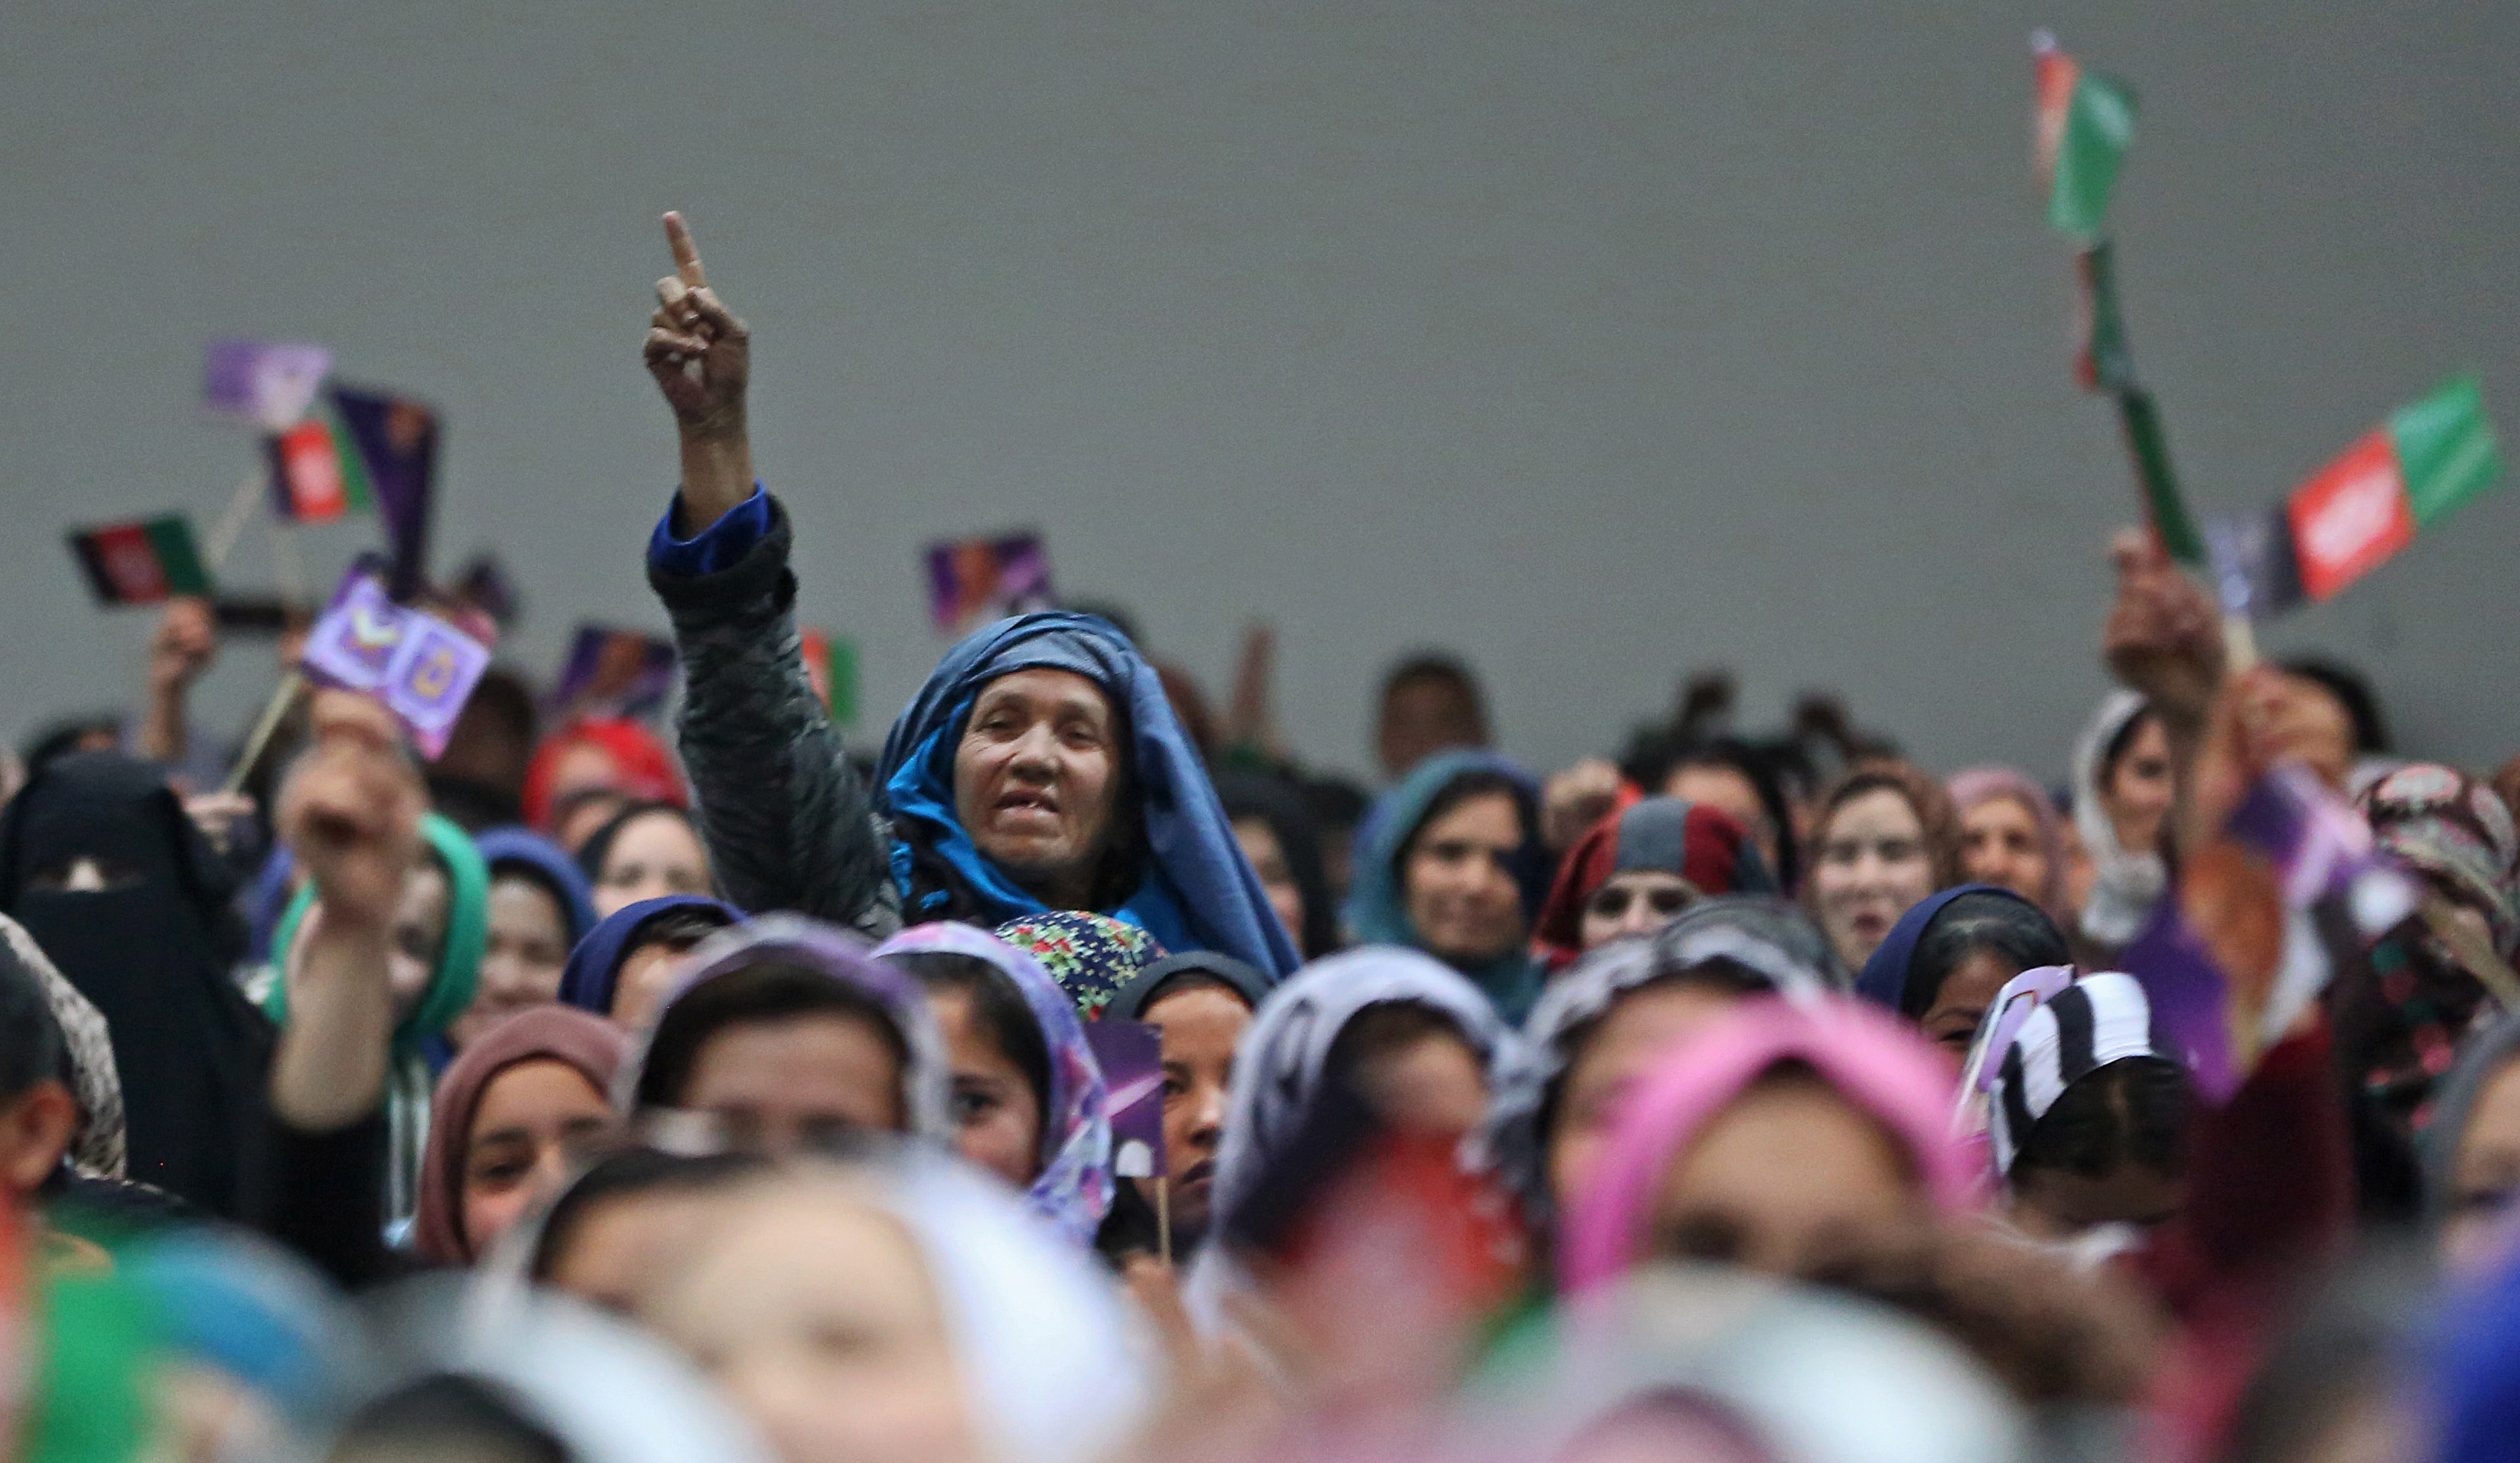 Female supporters  cheer during an Afghan presidential campaign rally.